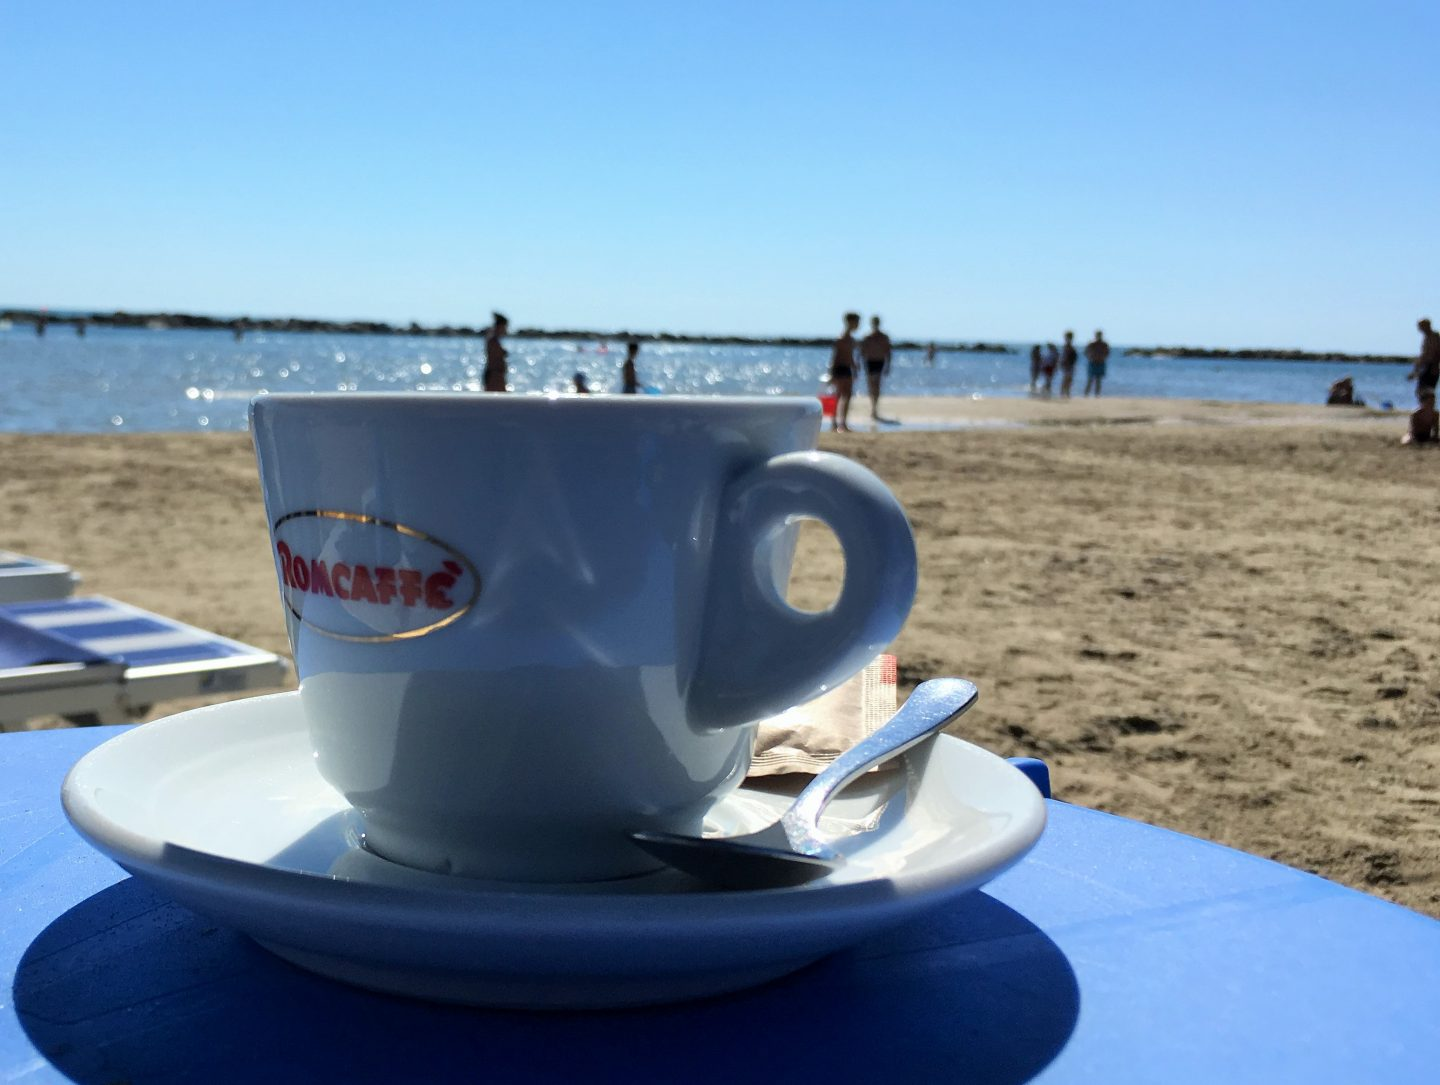 coffee at the beach grottammare le marche italy adriatic